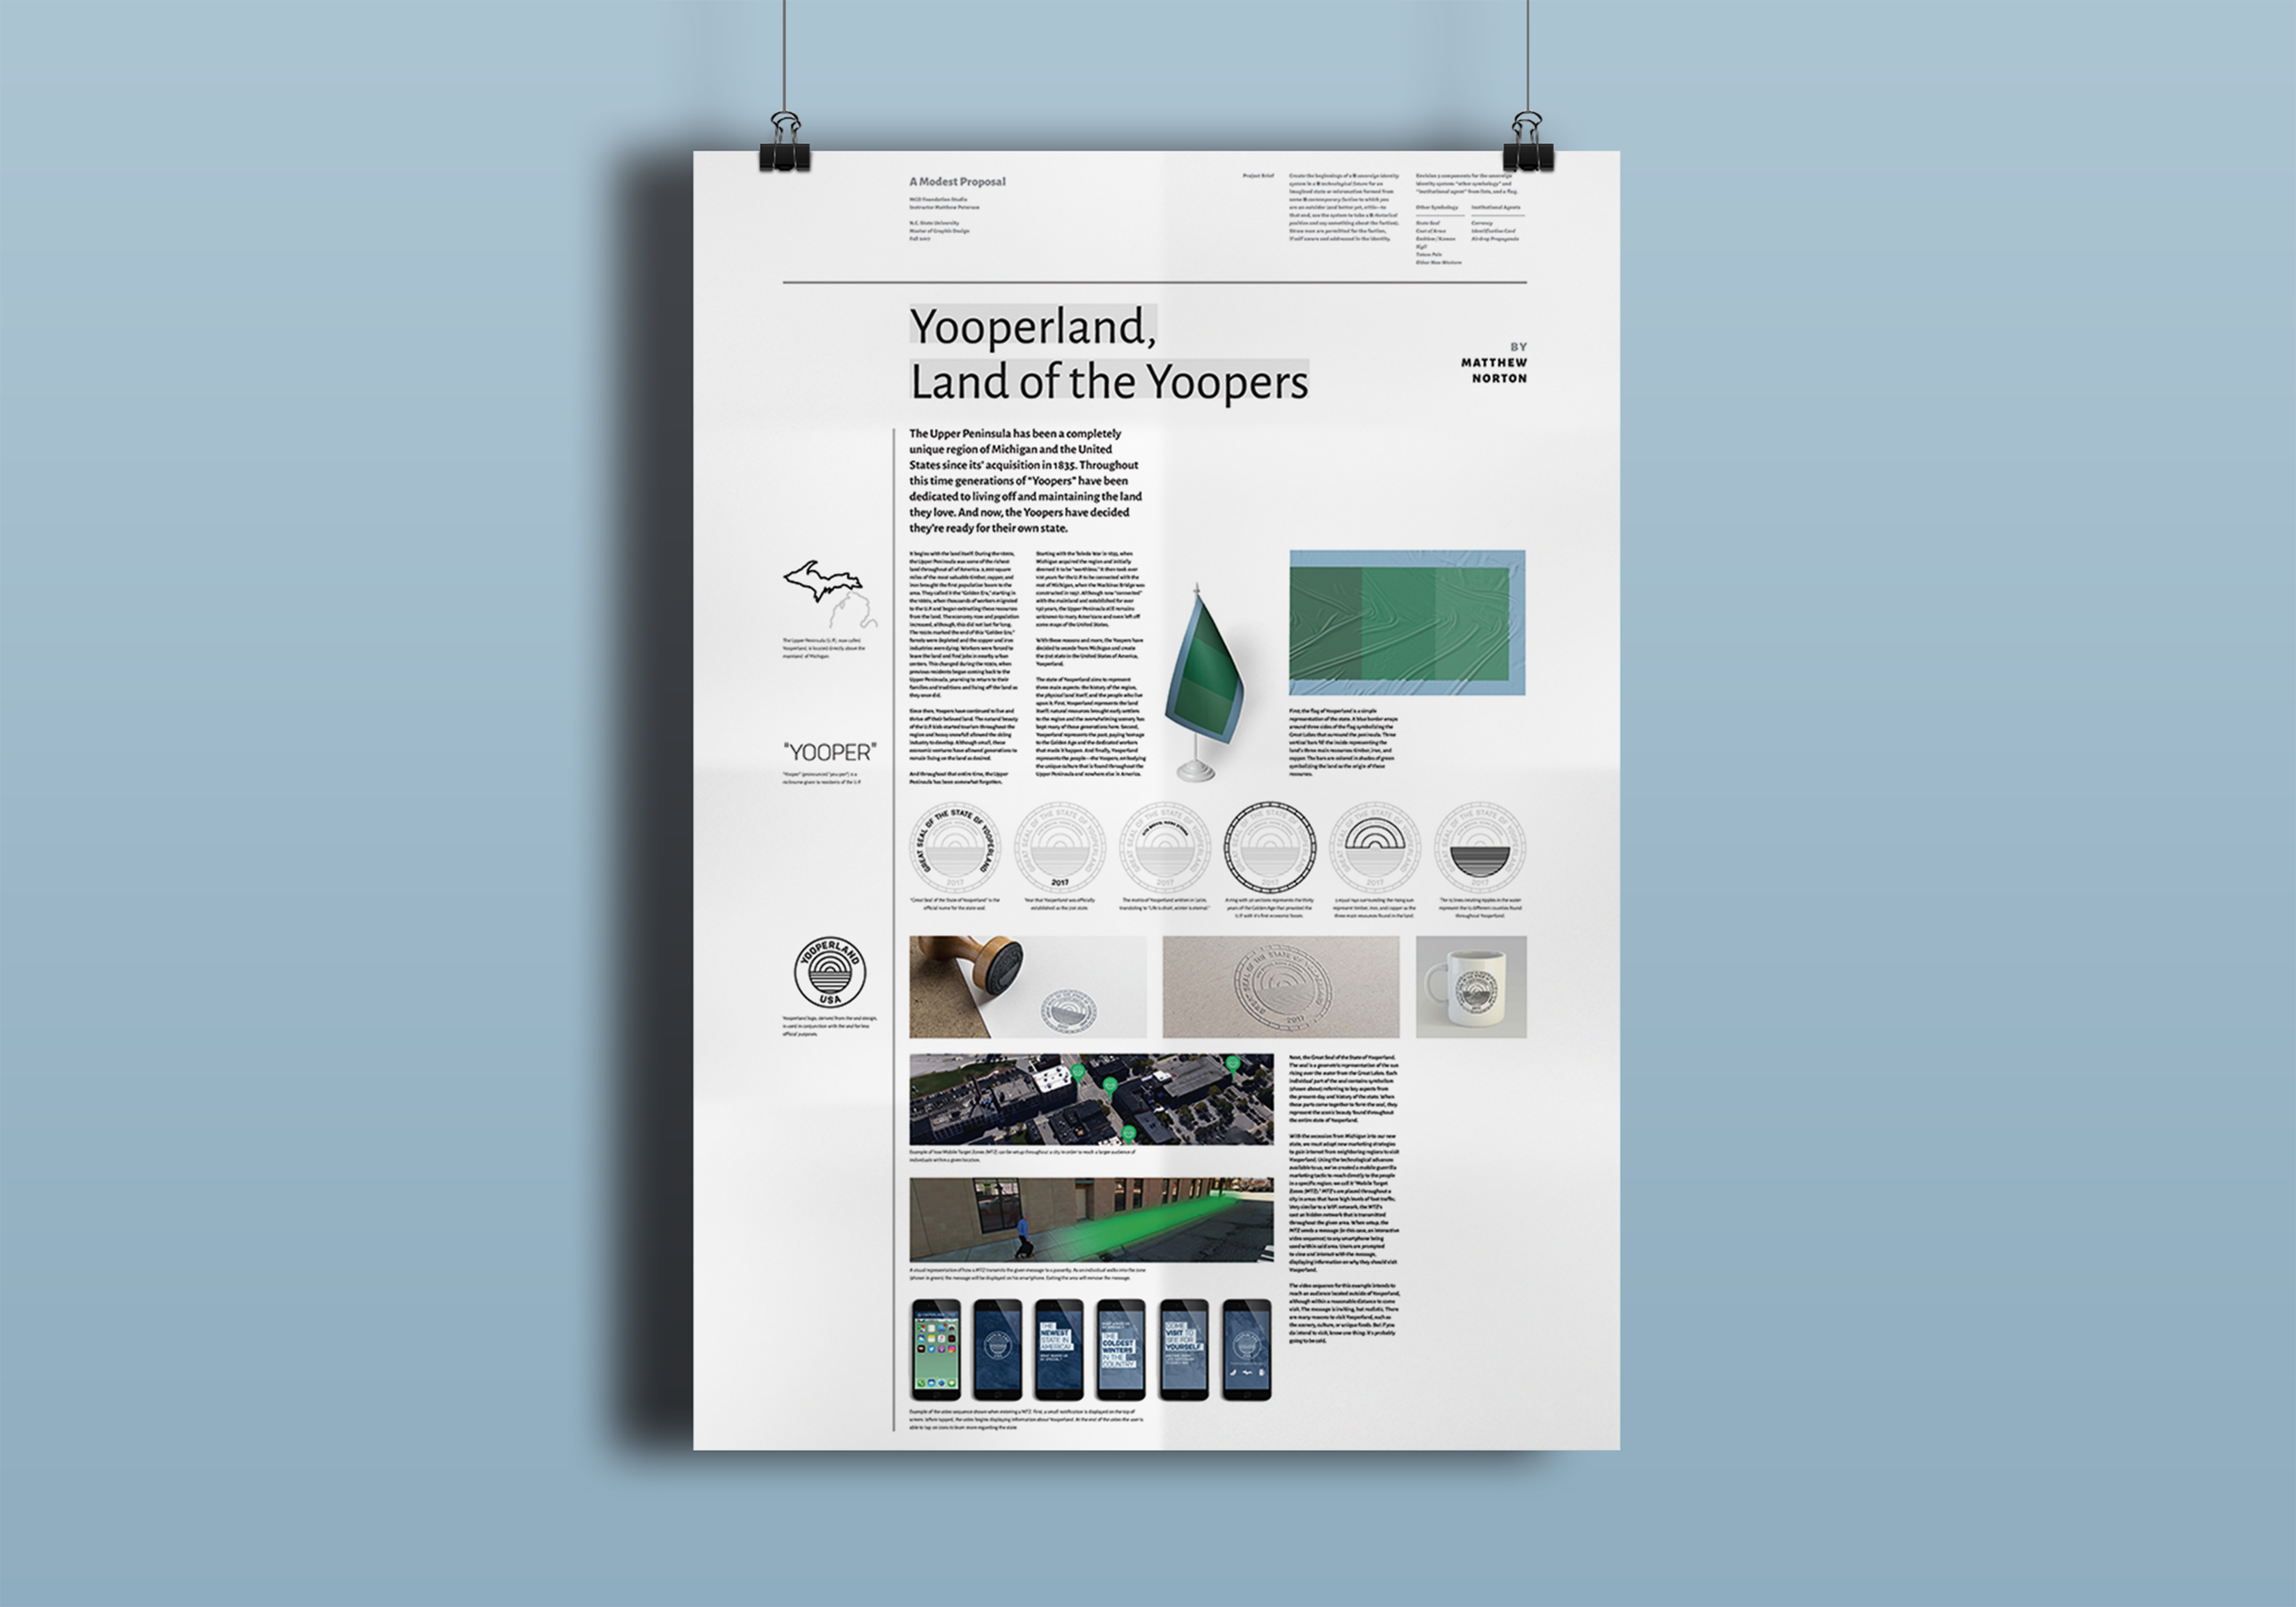 Final poster design displaying each designed assets and explaining the story behind Yooperland.